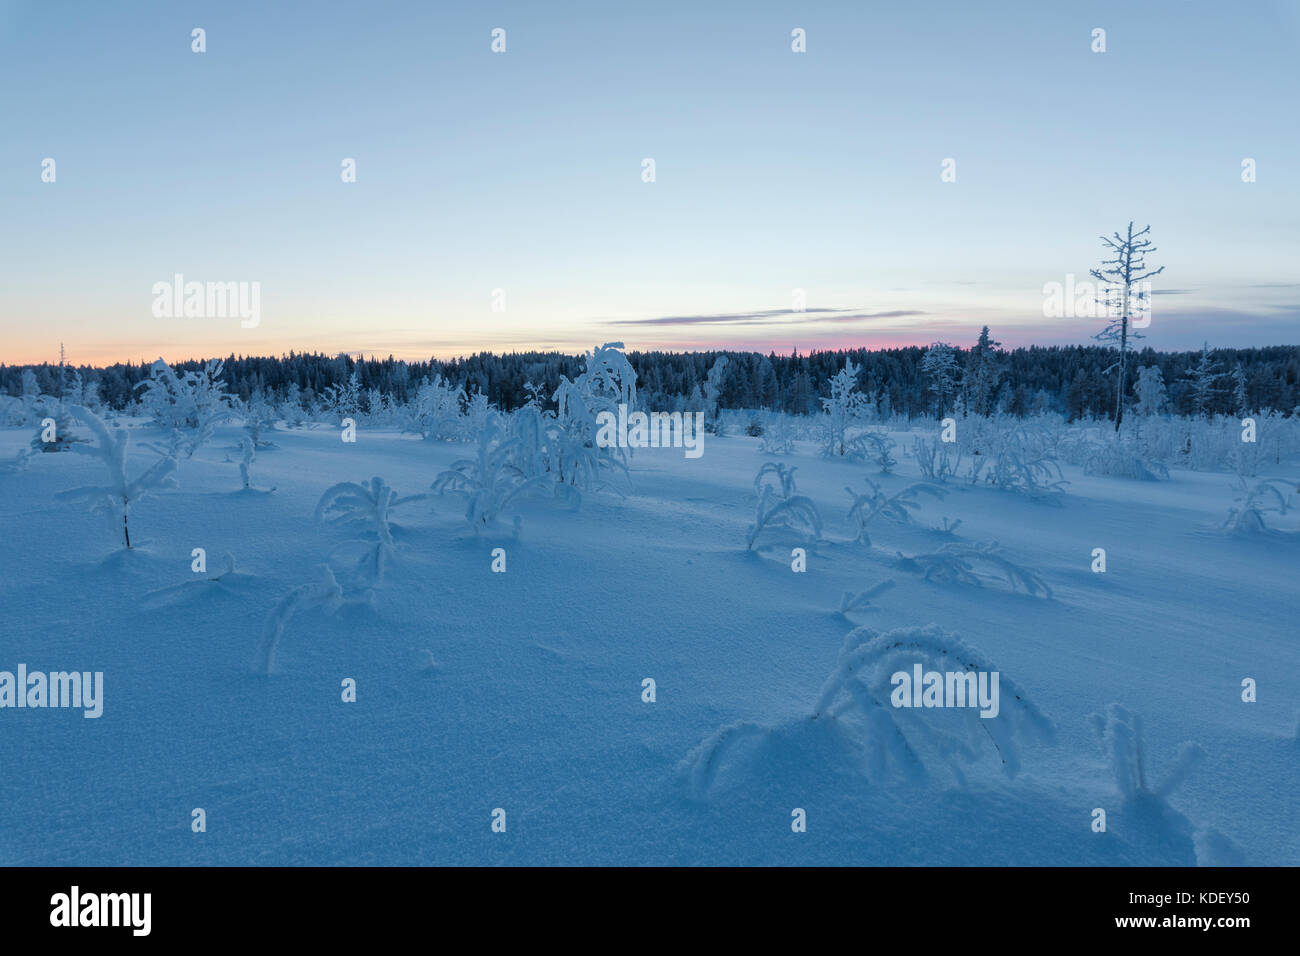 Dusk on trees covered with ice in the boreal forest (Taiga), Kiruna, Norrbotten County, Lapland, Sweden - Stock Image